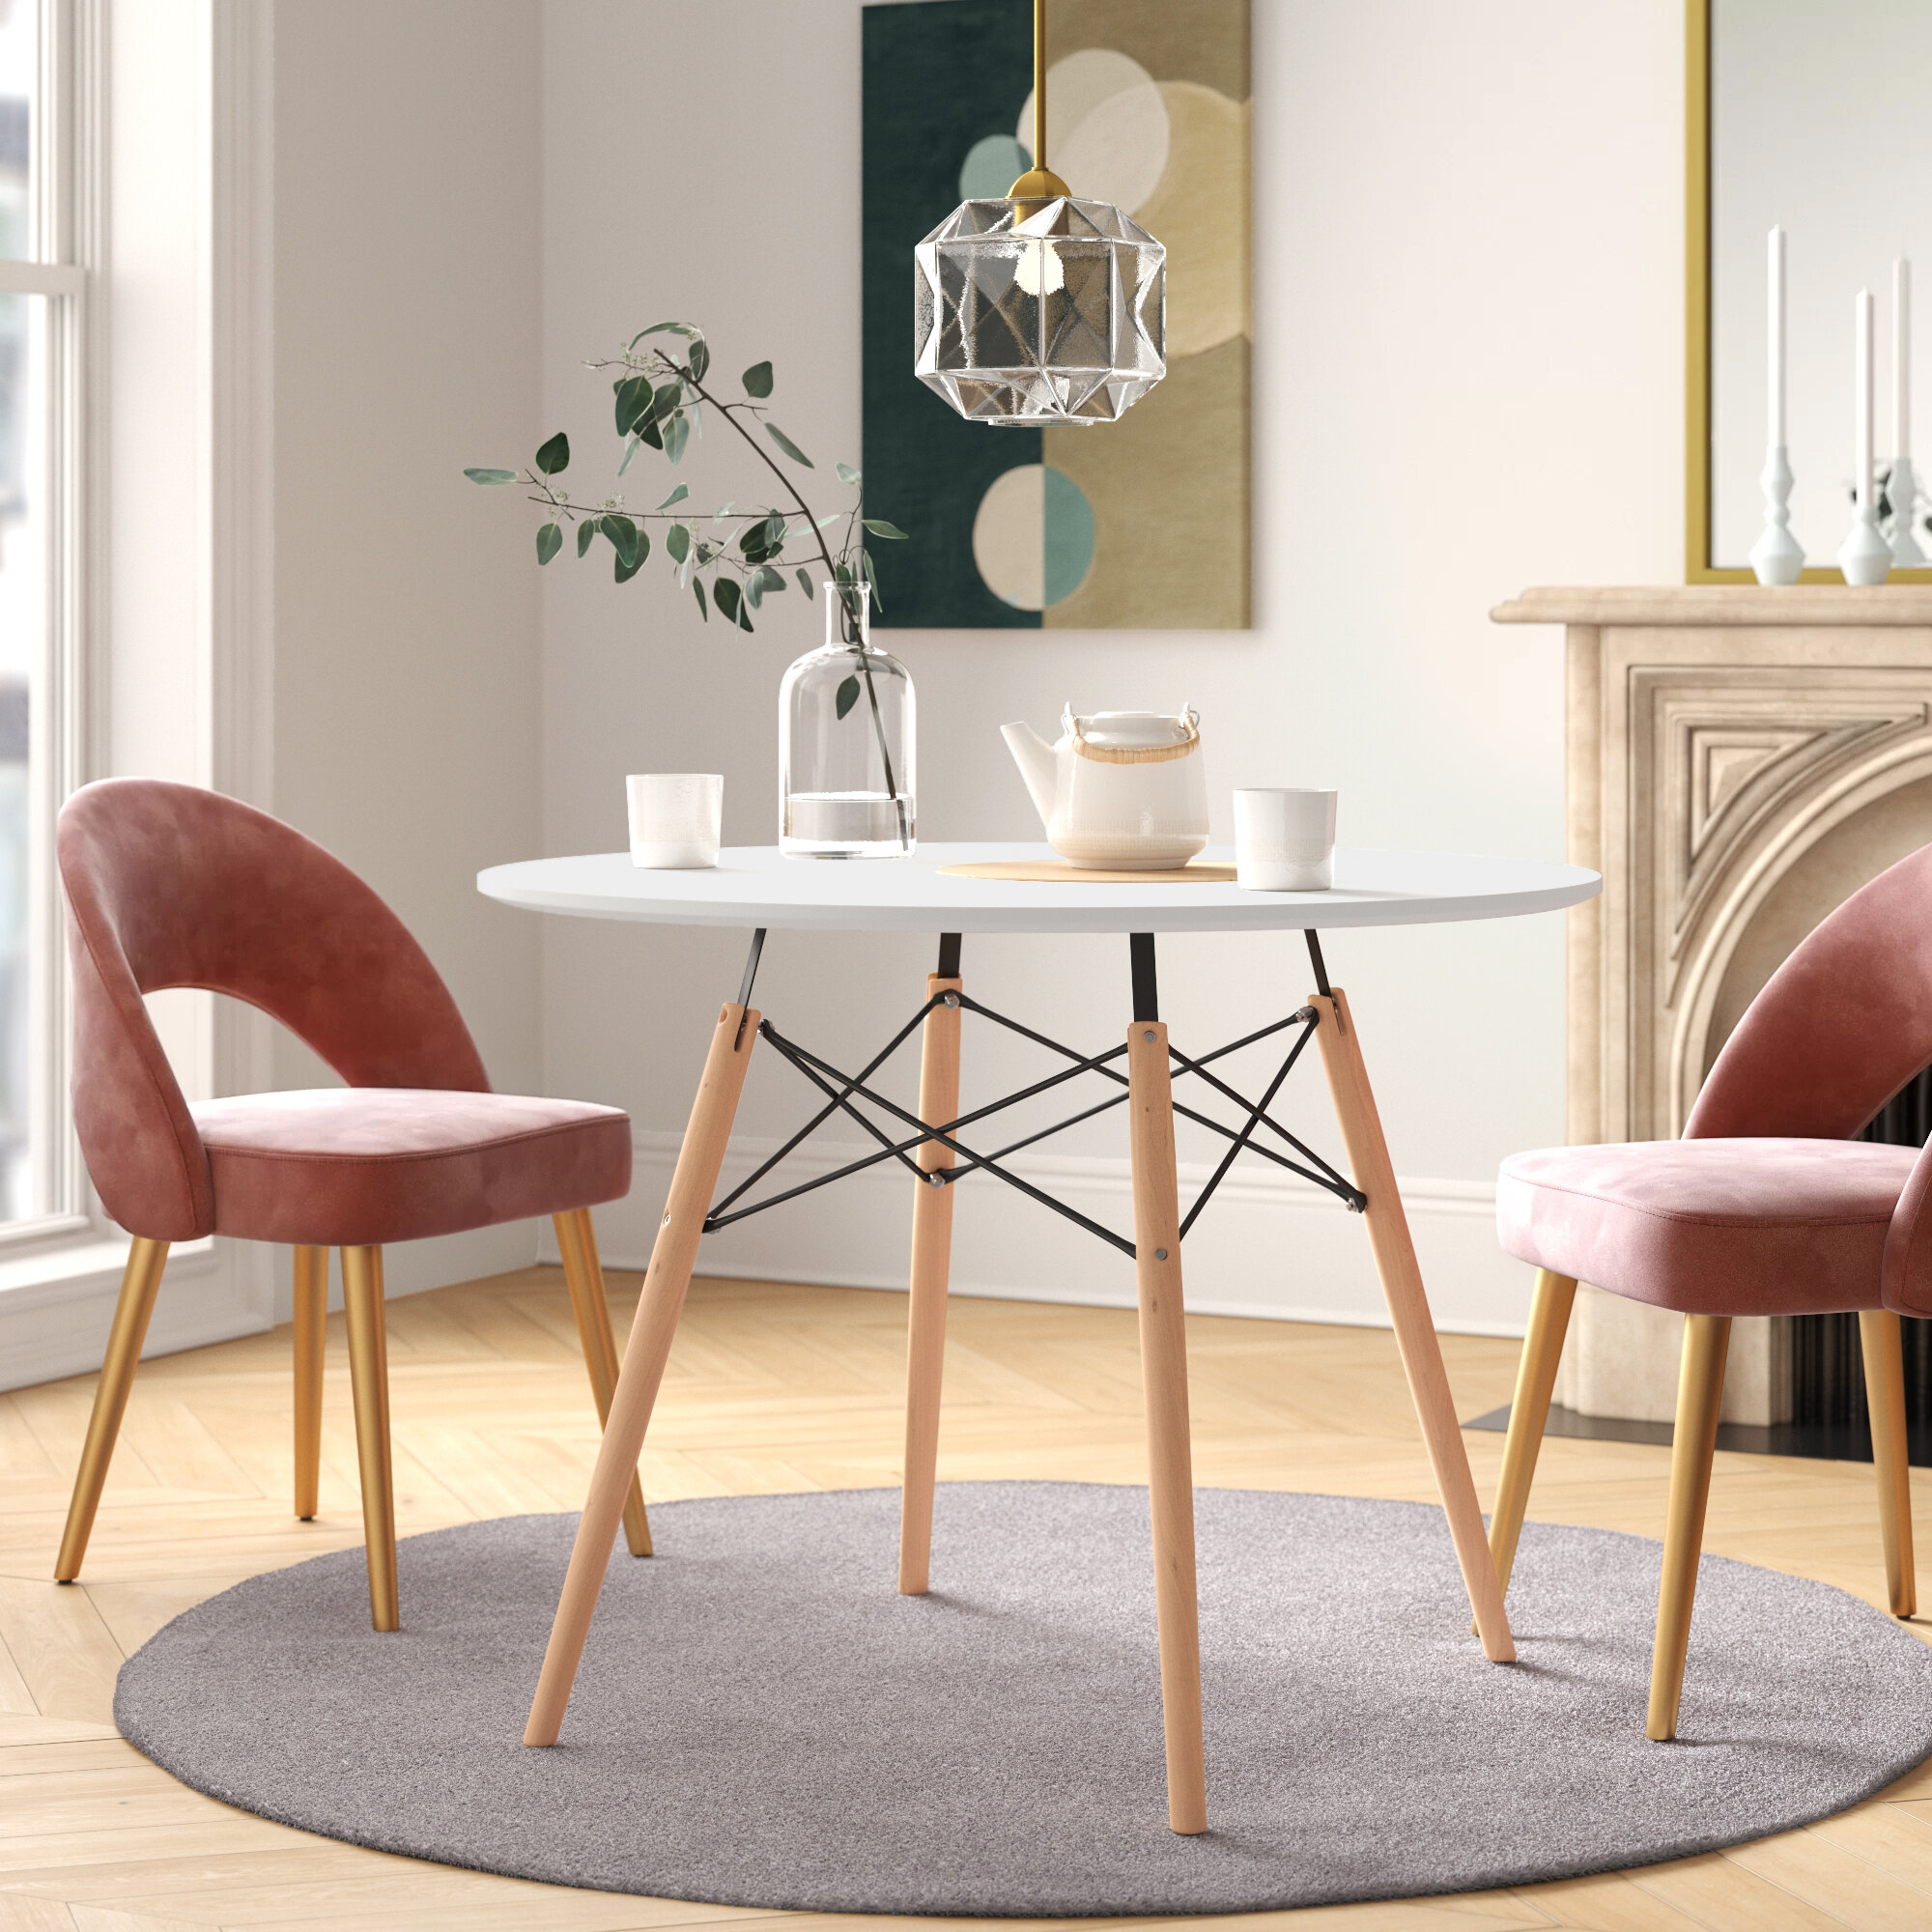 Small 9 Seat Kitchen & Dining Tables You'll Love in 9   Wayfair